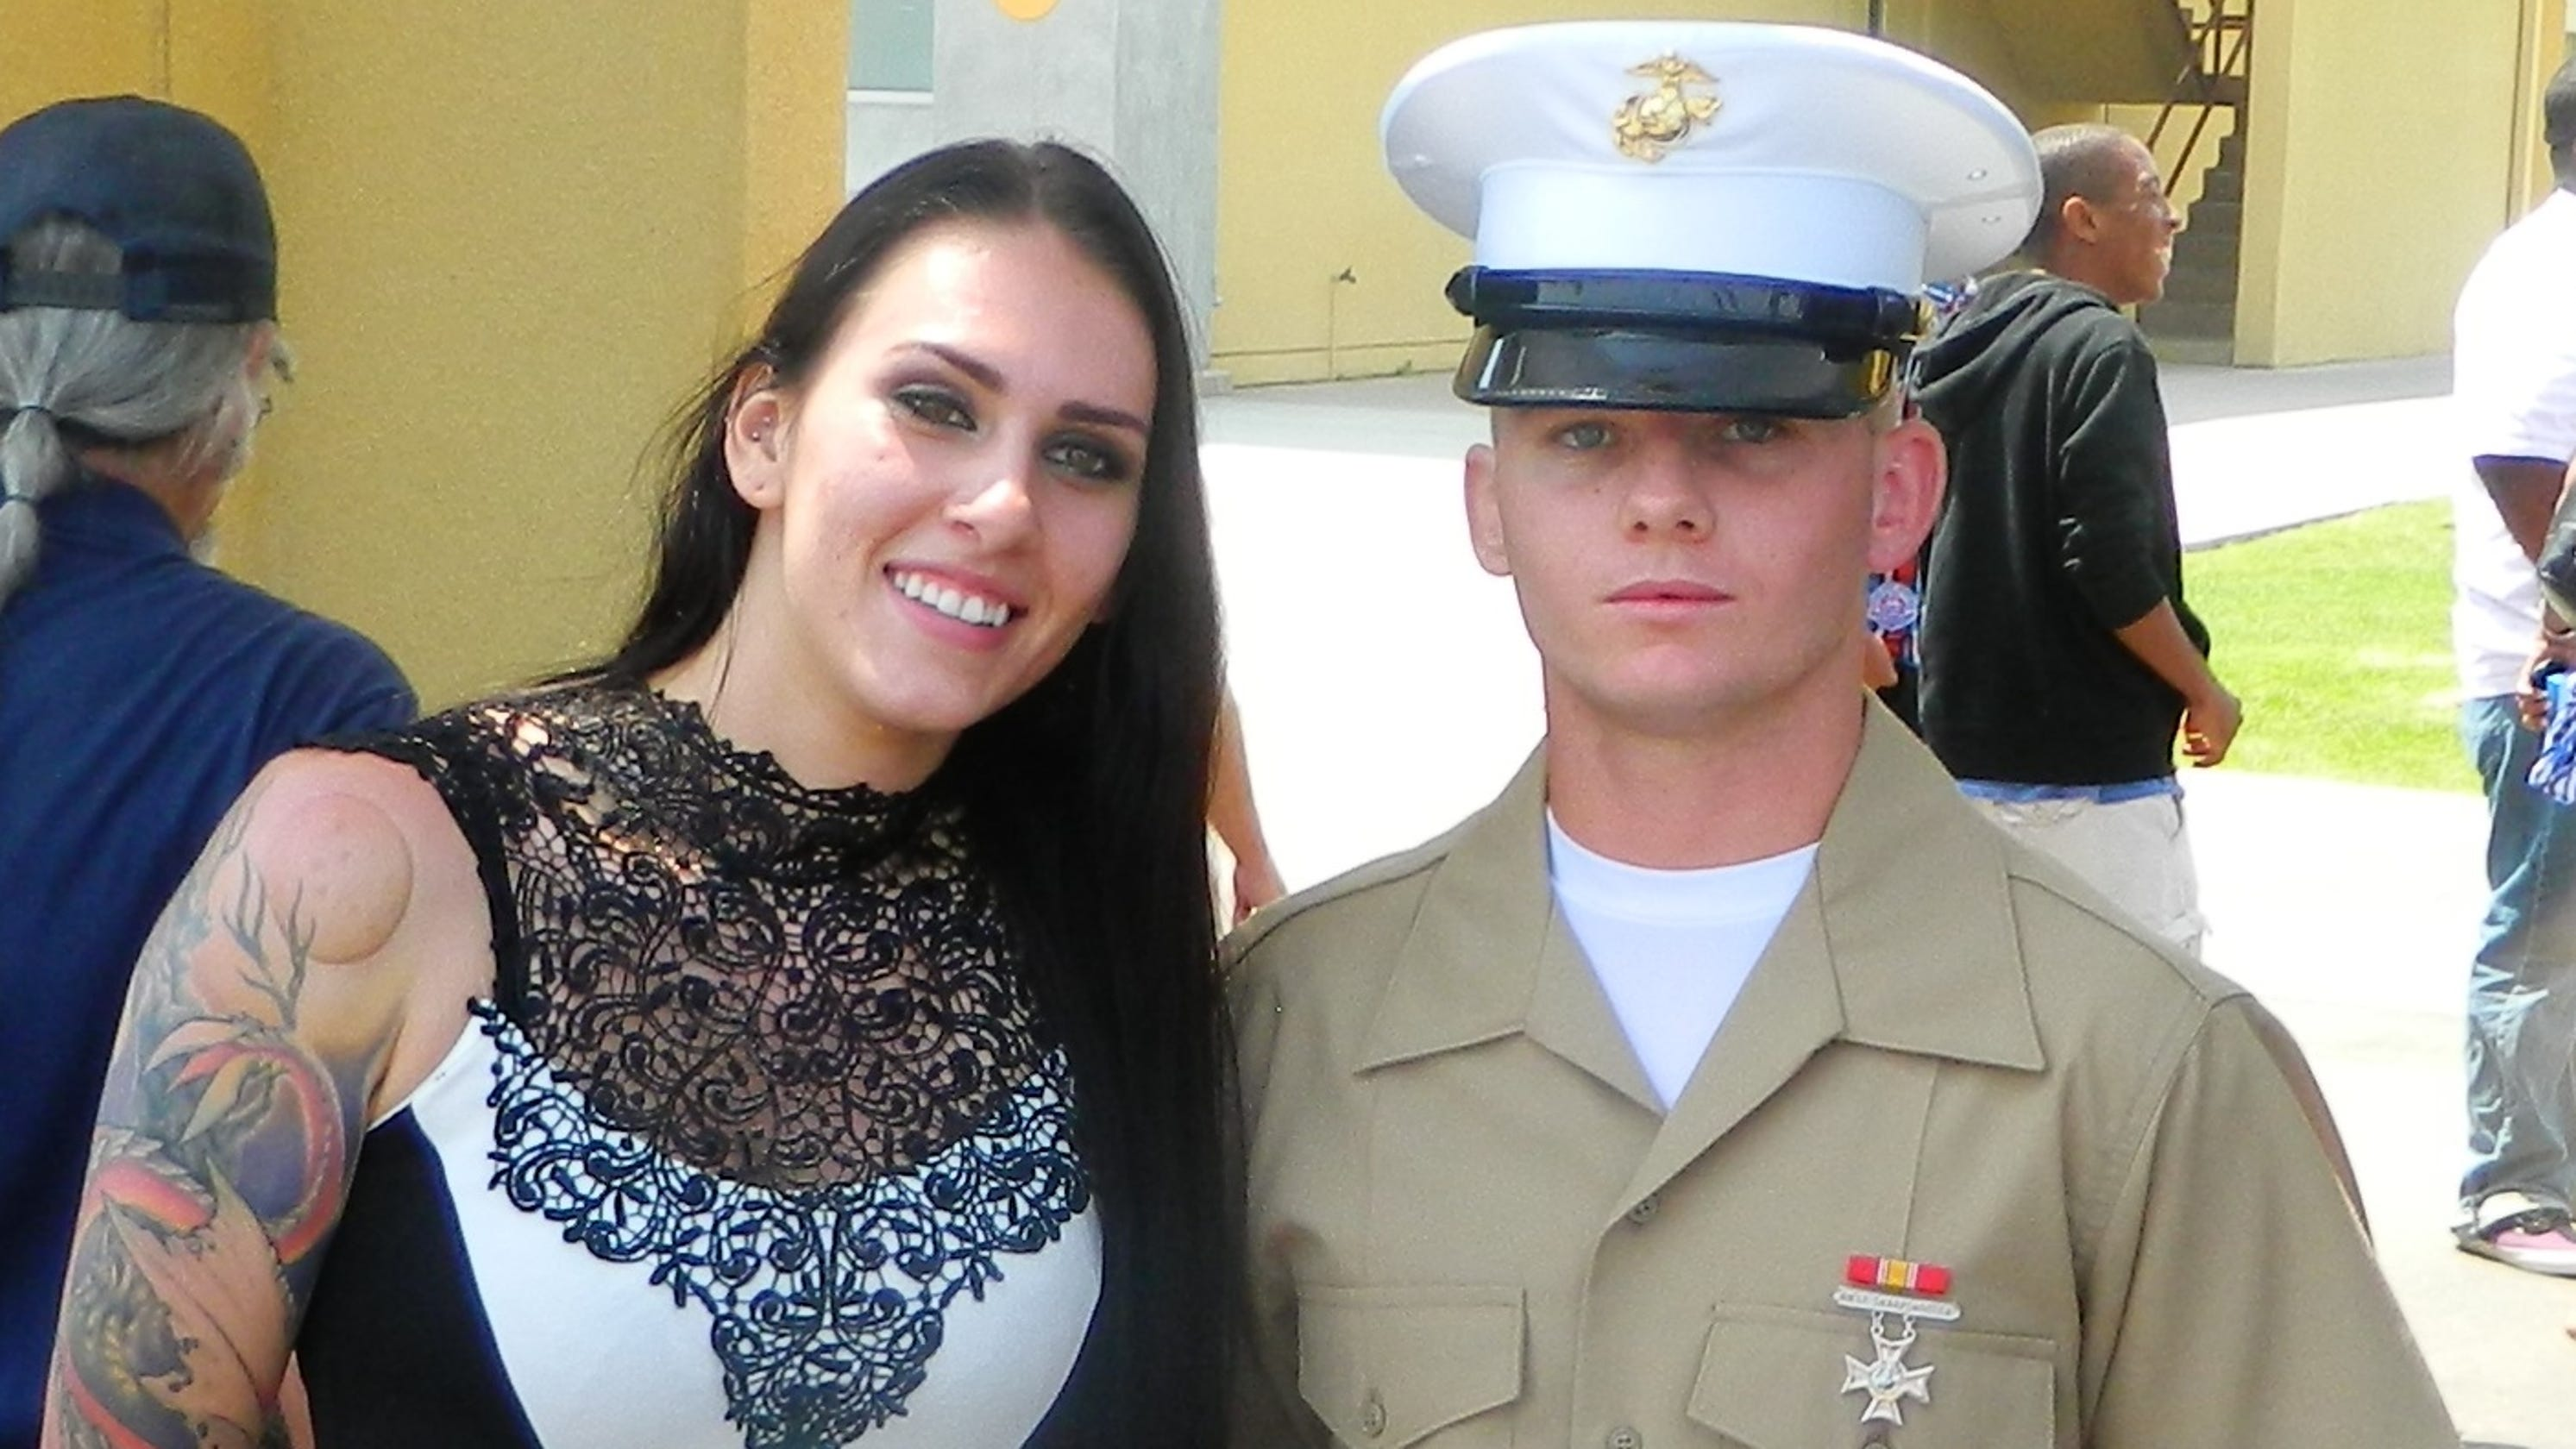 Marine Corps widow faces nearly $10K bill after husband's